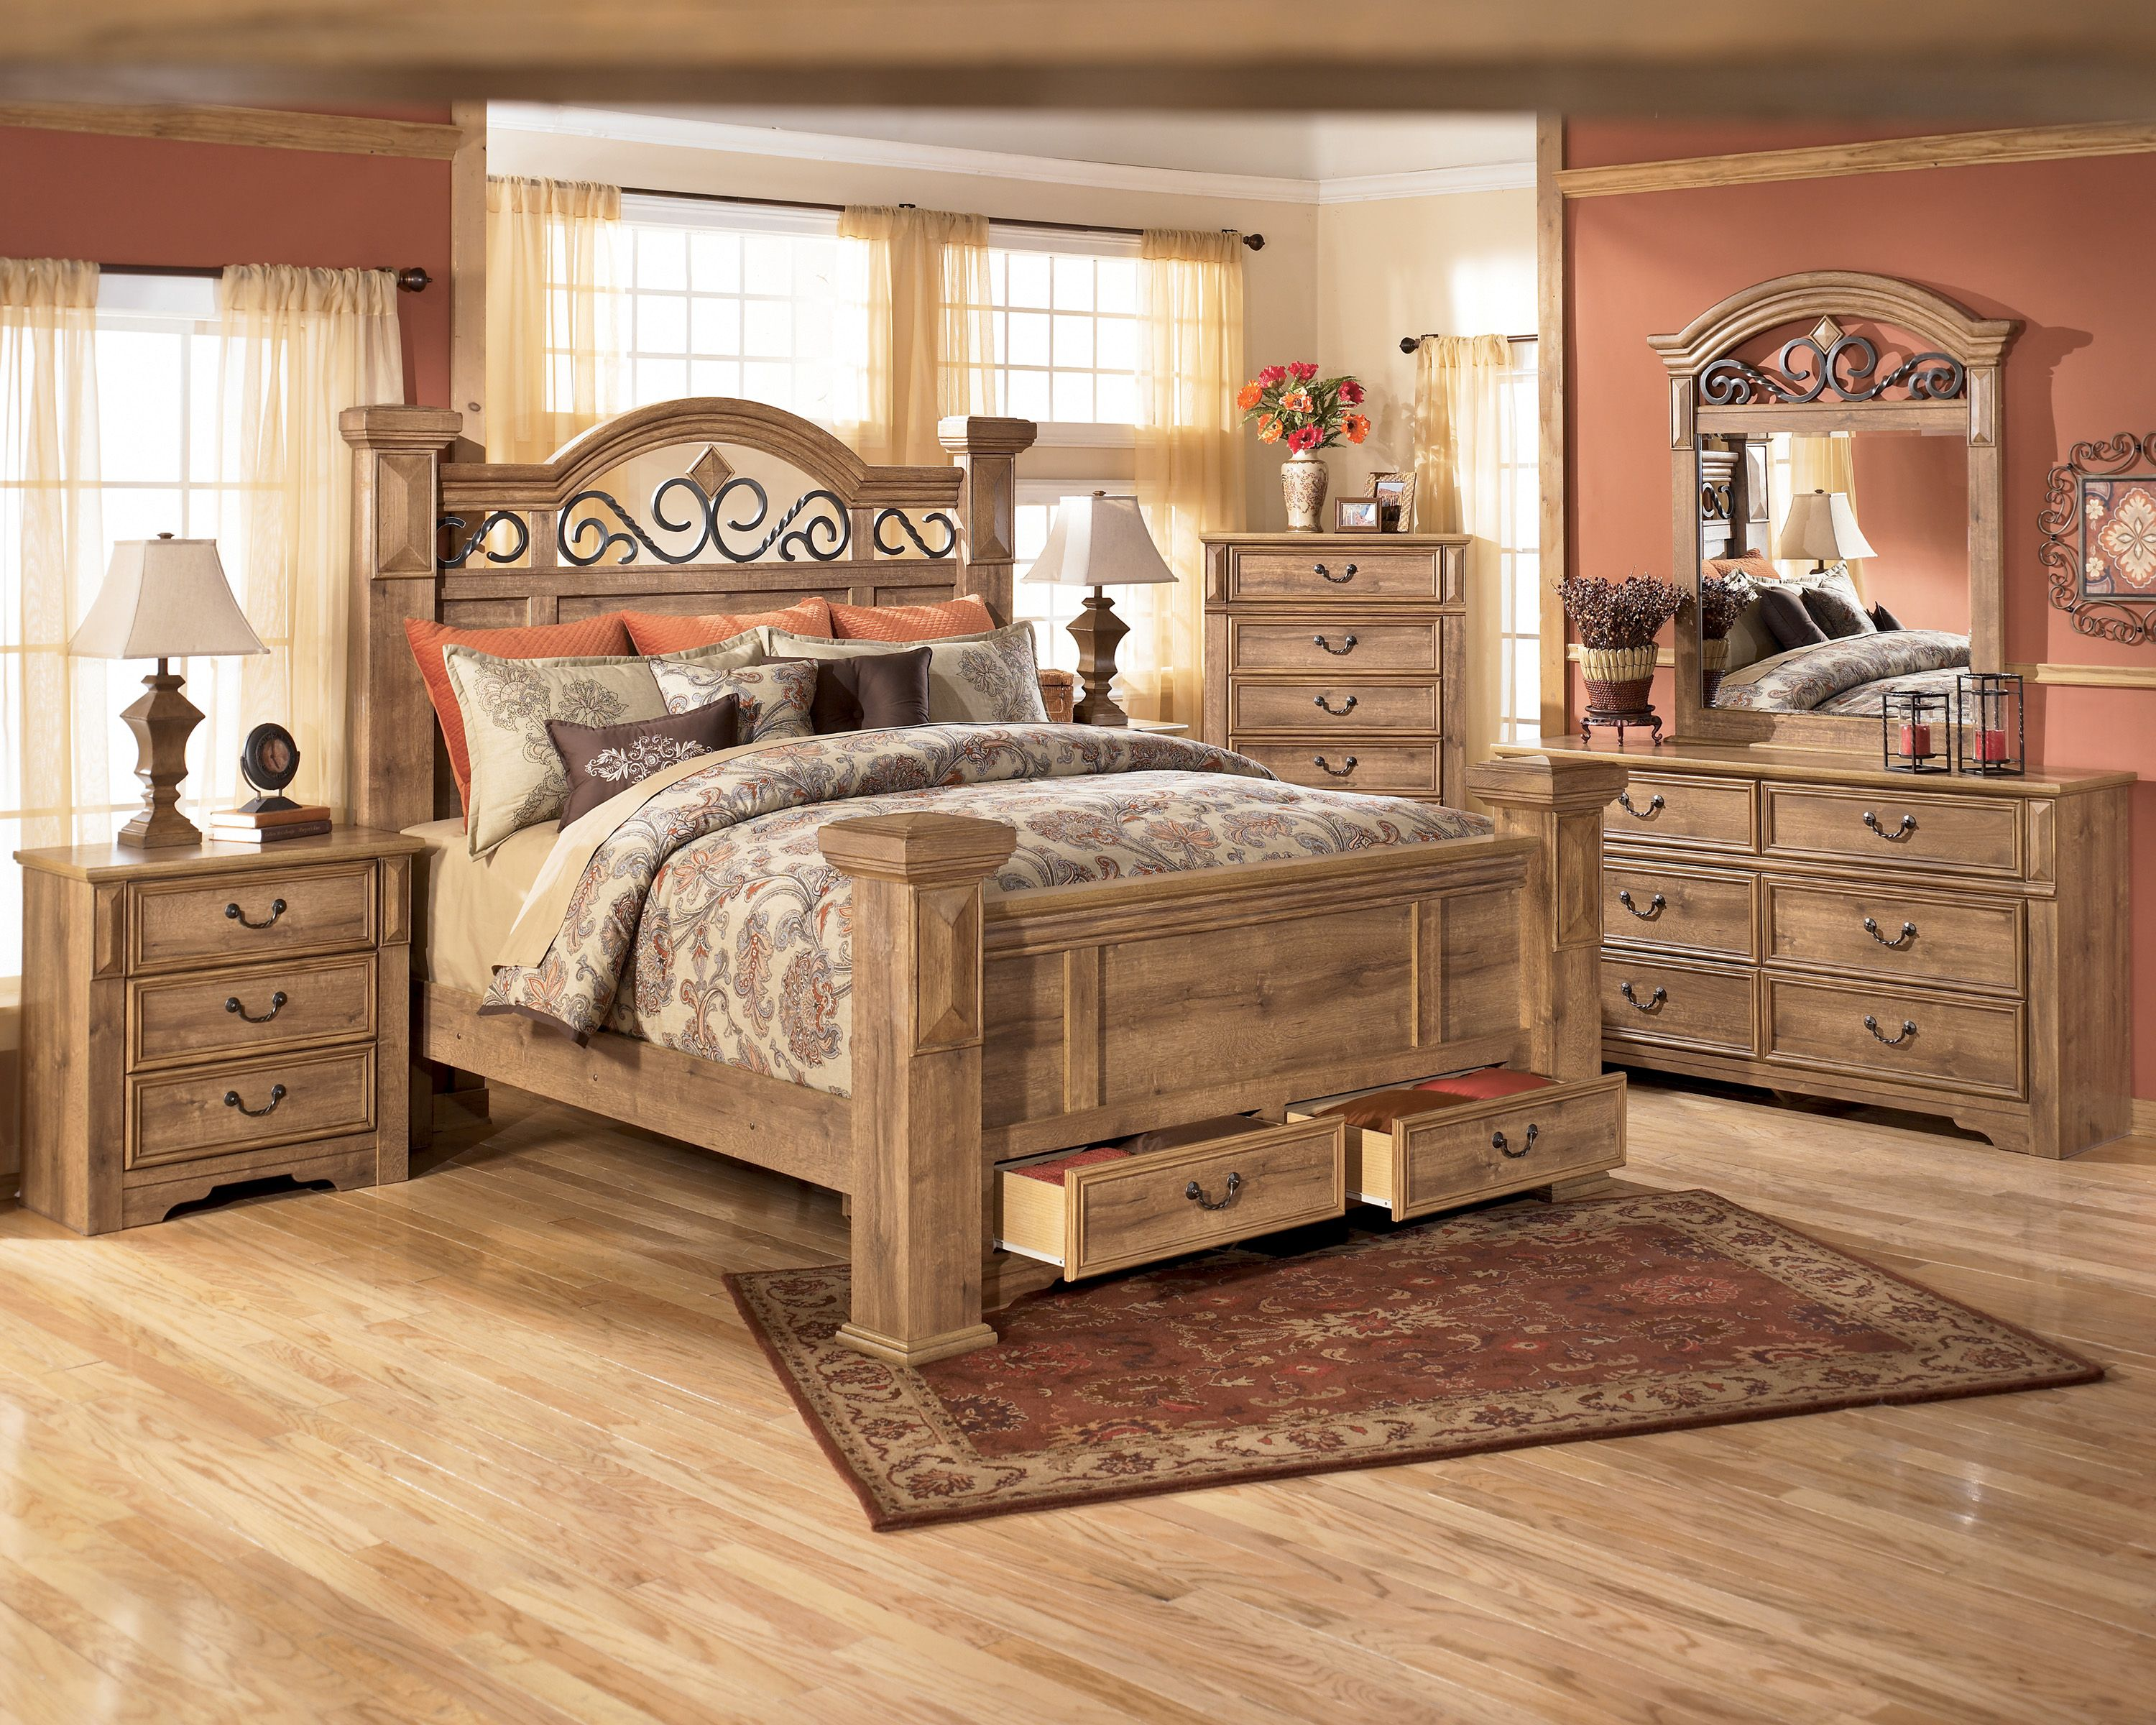 Best King Size Bed Set Rosalinda King size bedroom sets